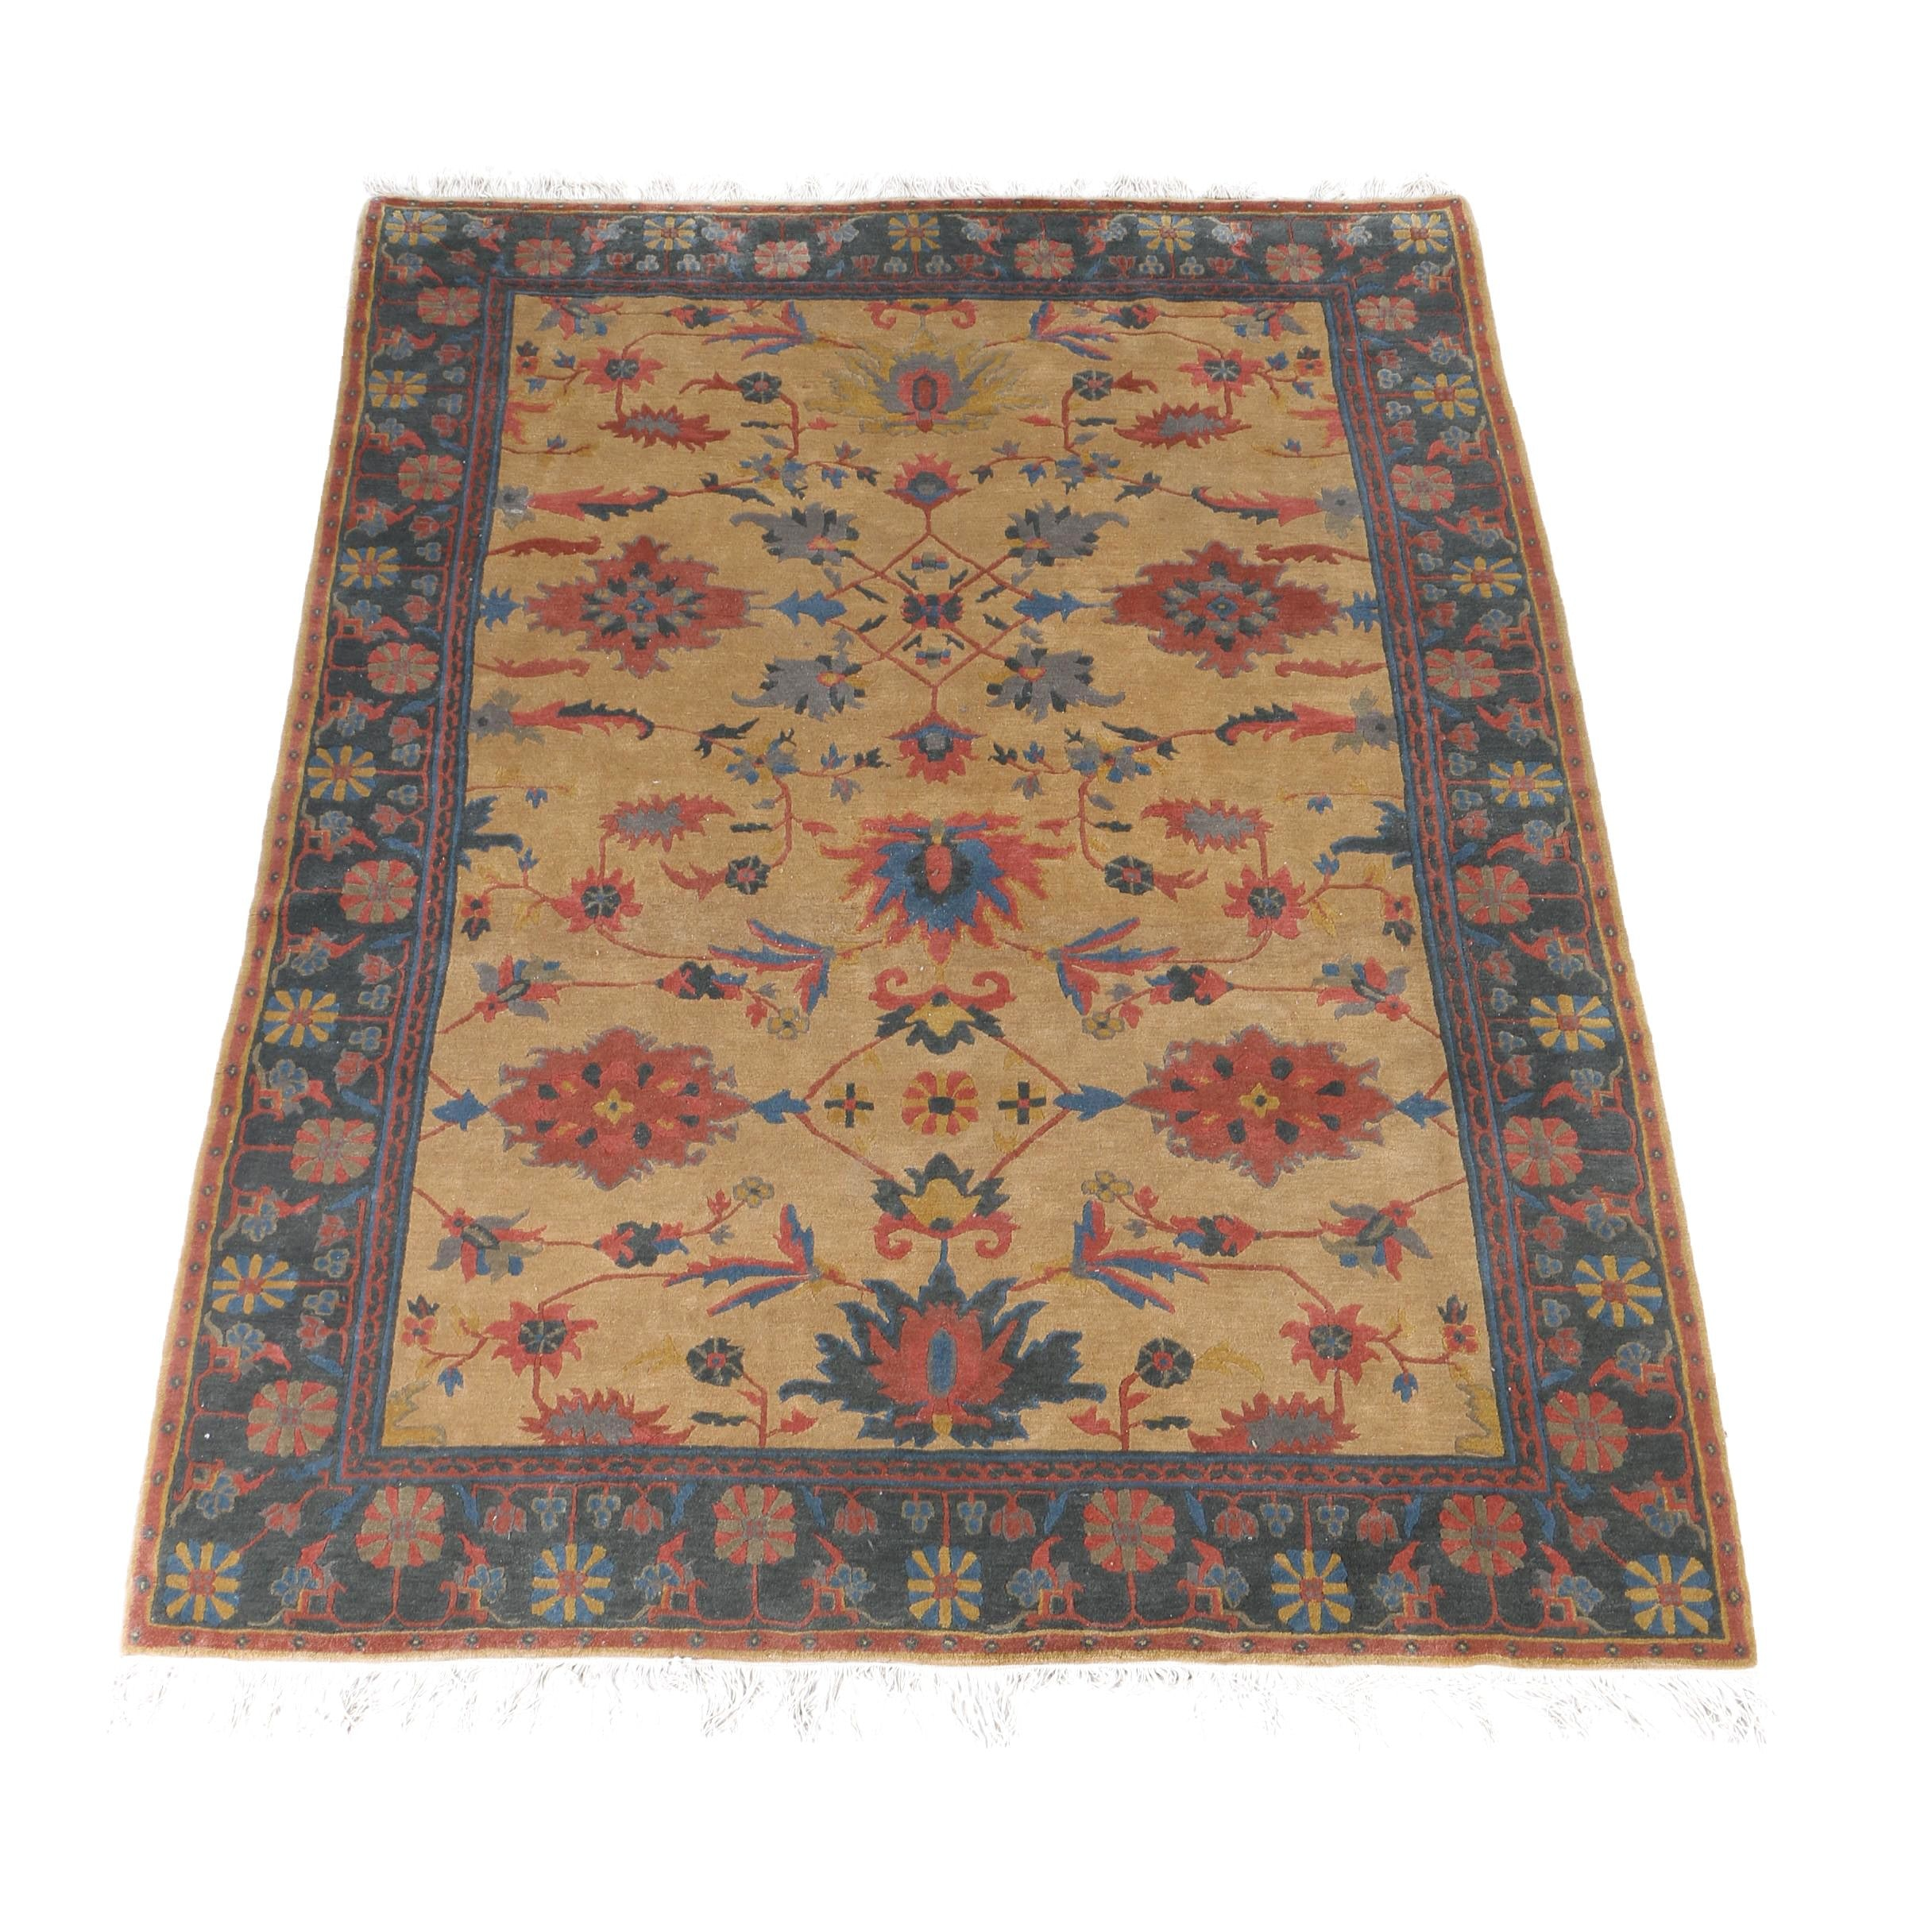 Hand-Knotted Tufenkian Persian-Inspired Tibetan Wool Area Rug